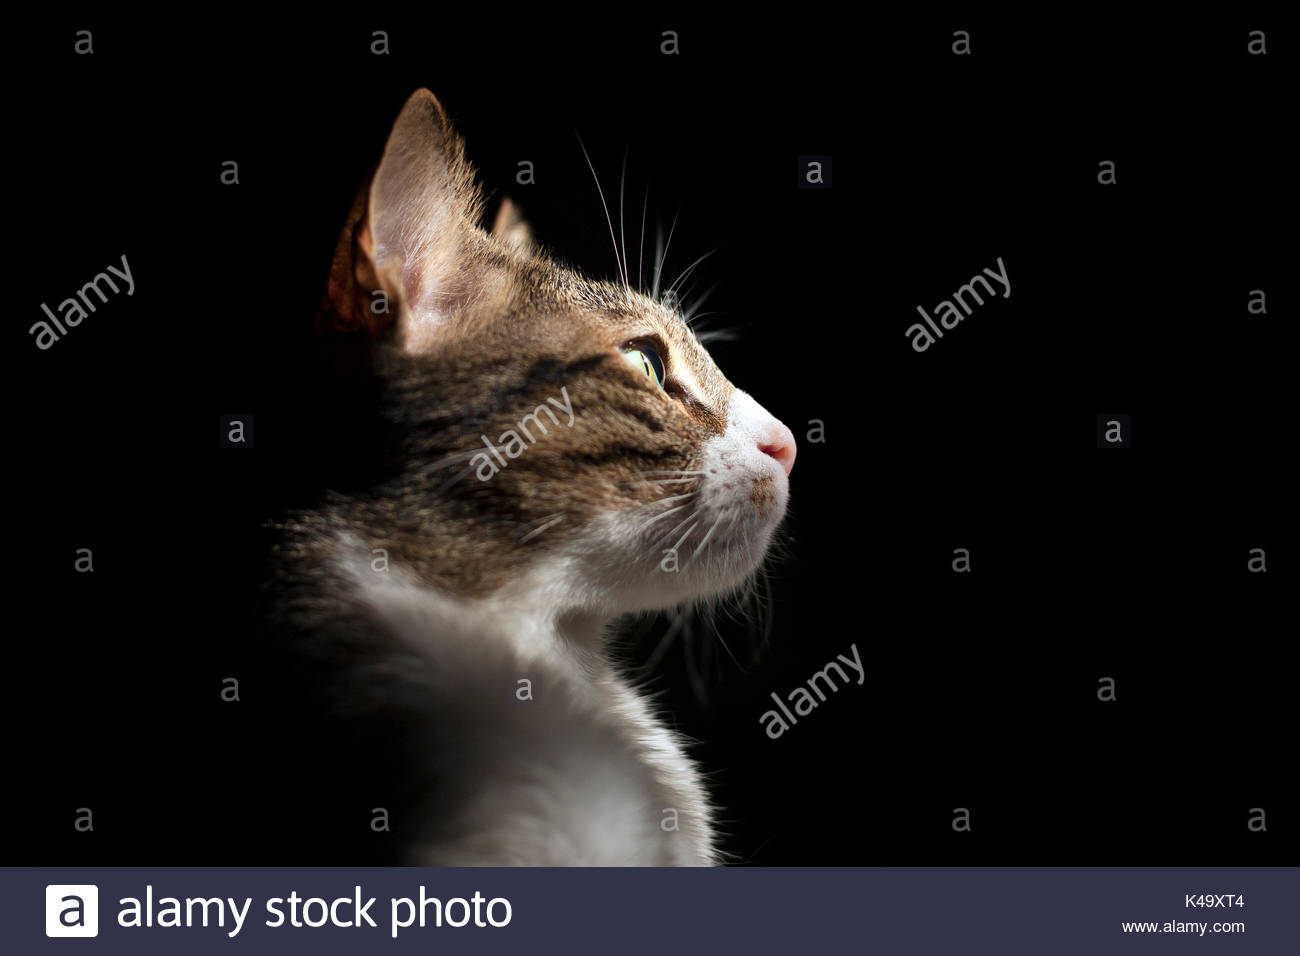 Portrait de profil d'un chat sur fond noir Photo Stock